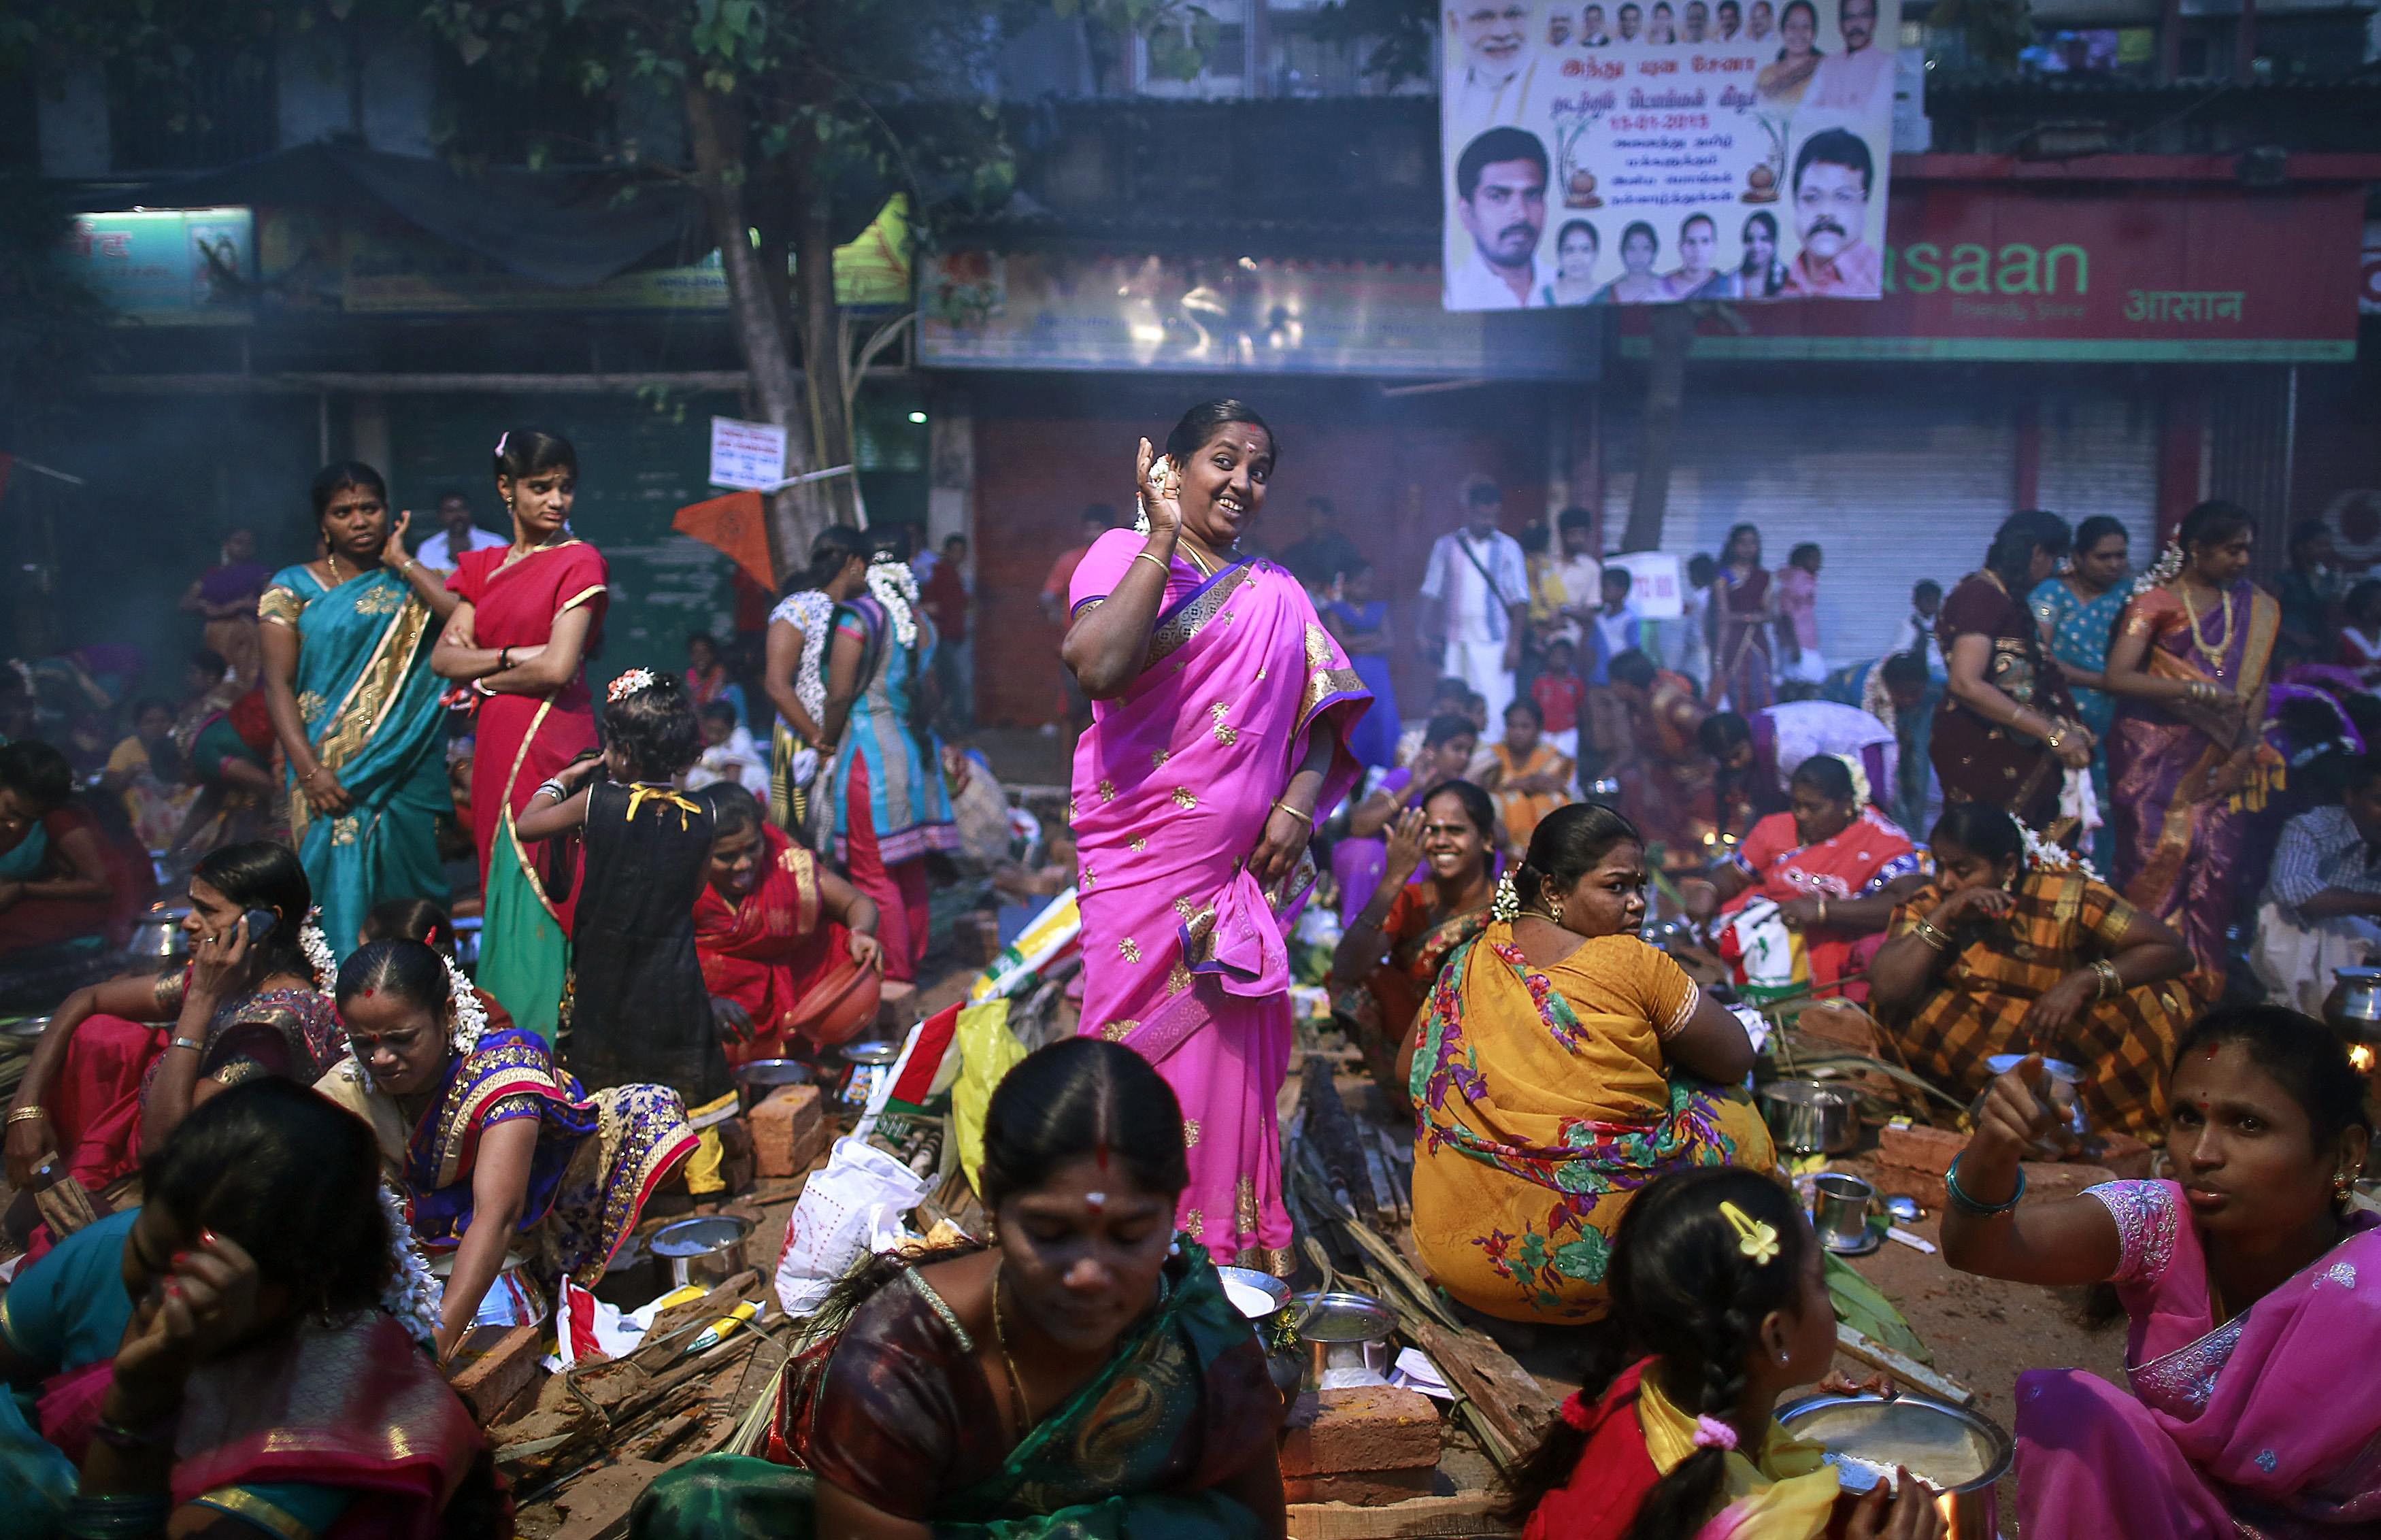 A devotee reacts to smoke as others prepare ritual rice dishes to offer to the Hindu Sun God as they attend Pongal celebrations at a slum in Mumbai...A devotee reacts to smoke as others prepare ritual rice dishes to offer to the Hindu Sun God as they attend Pongal celebrations at a slum in Mumbai January 15, 2015. REUTERS/Danish Siddiqui (INDIA - Tags: SOCIETY RELIGION TPX IMAGES OF THE DAY)